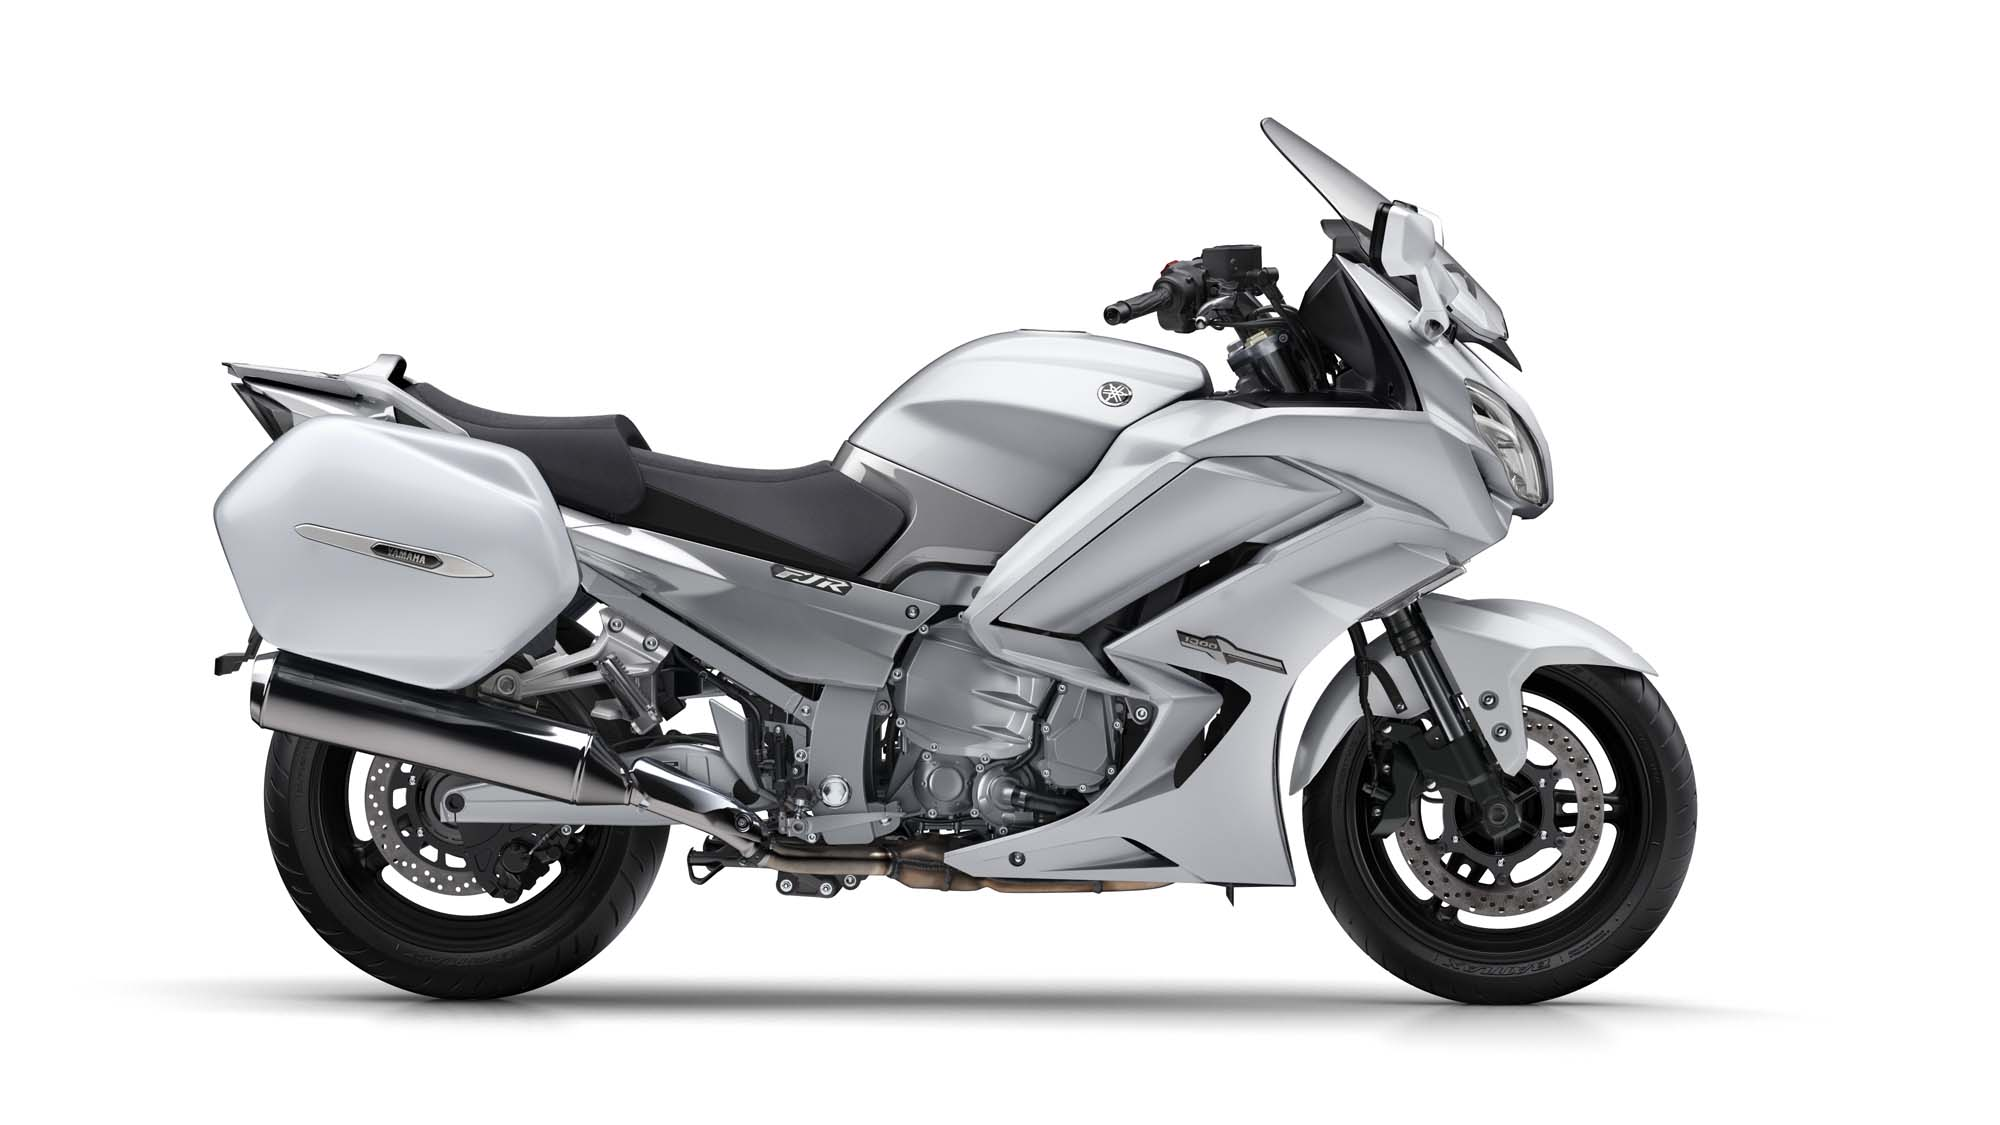 yamaha fjr 1300 ae bilder und technische daten. Black Bedroom Furniture Sets. Home Design Ideas